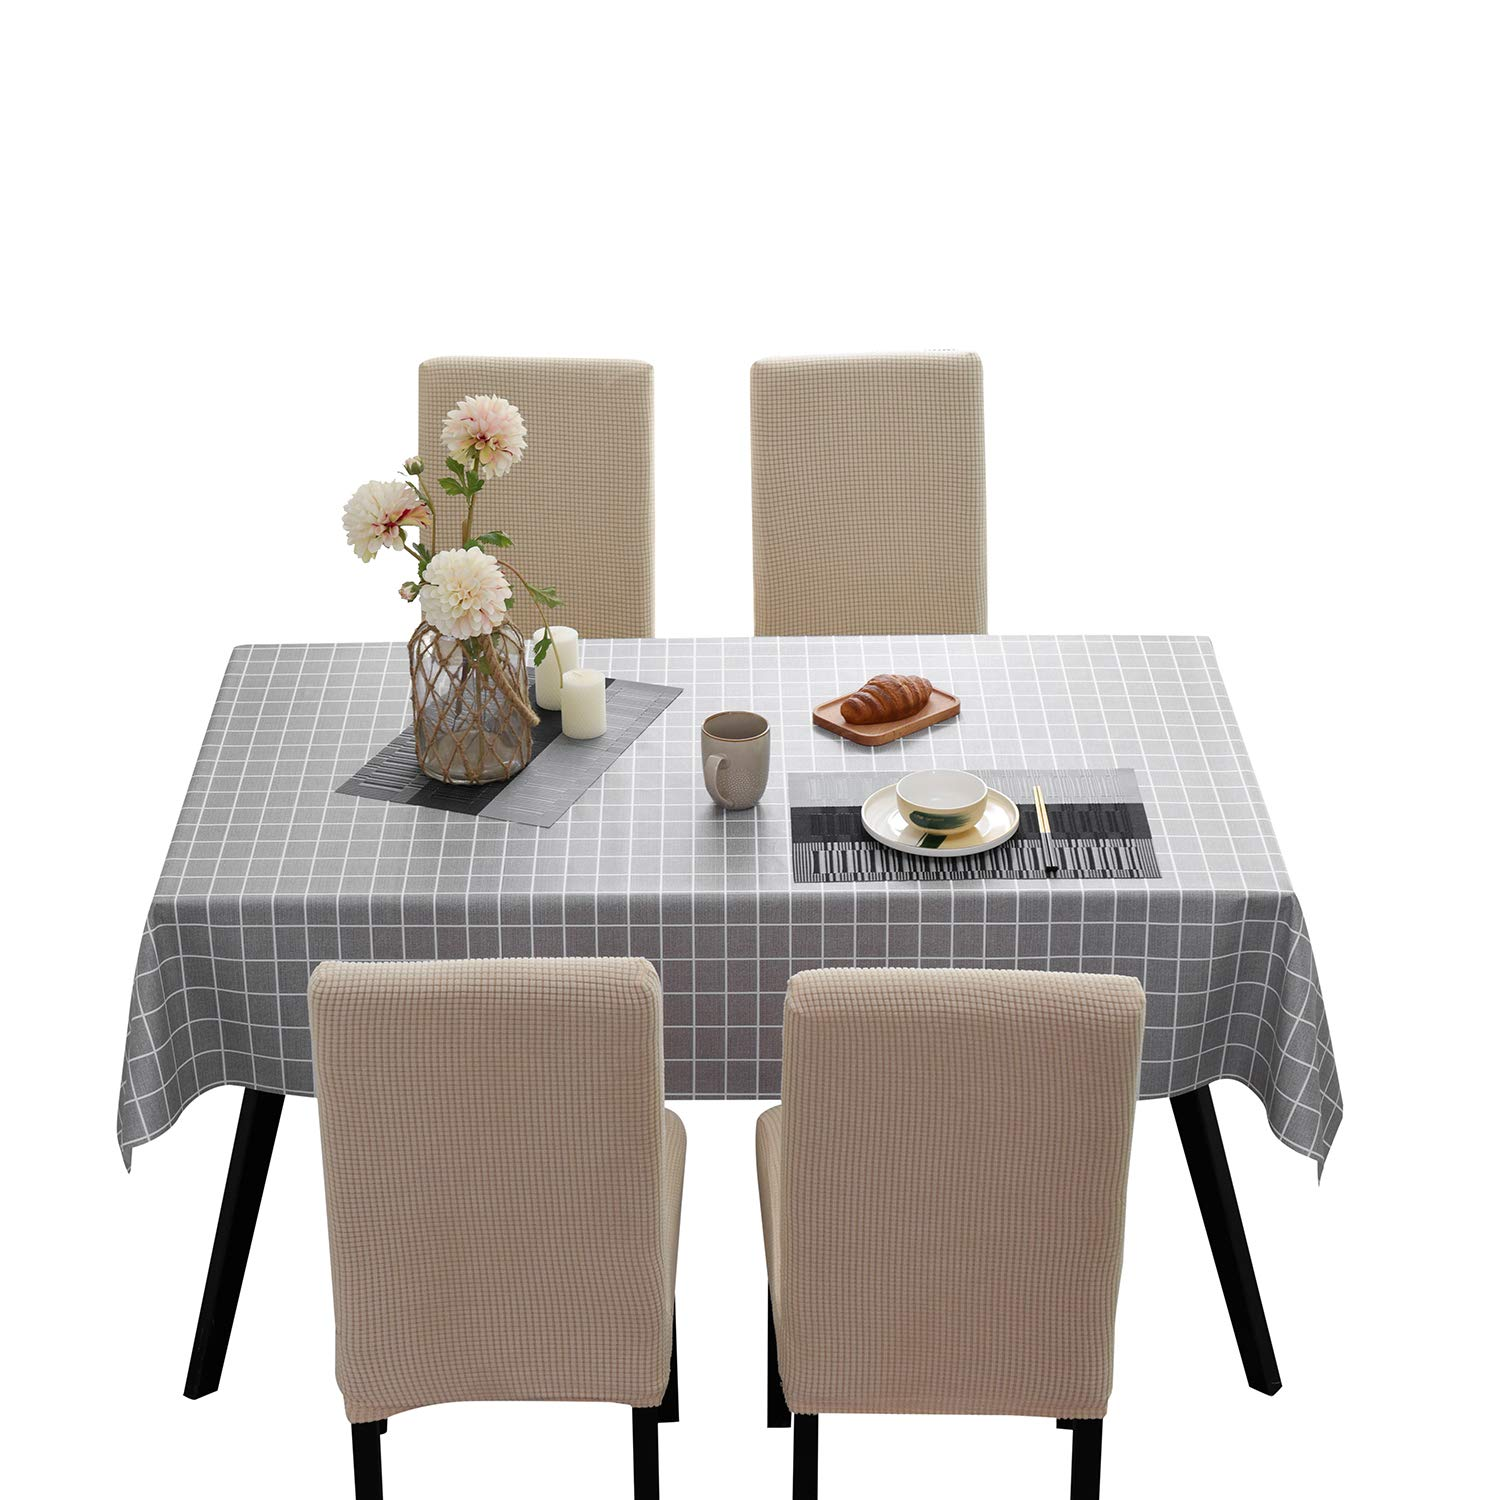 Wipe Clean Dining Washable Table Cloth Furniture Tabletop Protector Covers UK